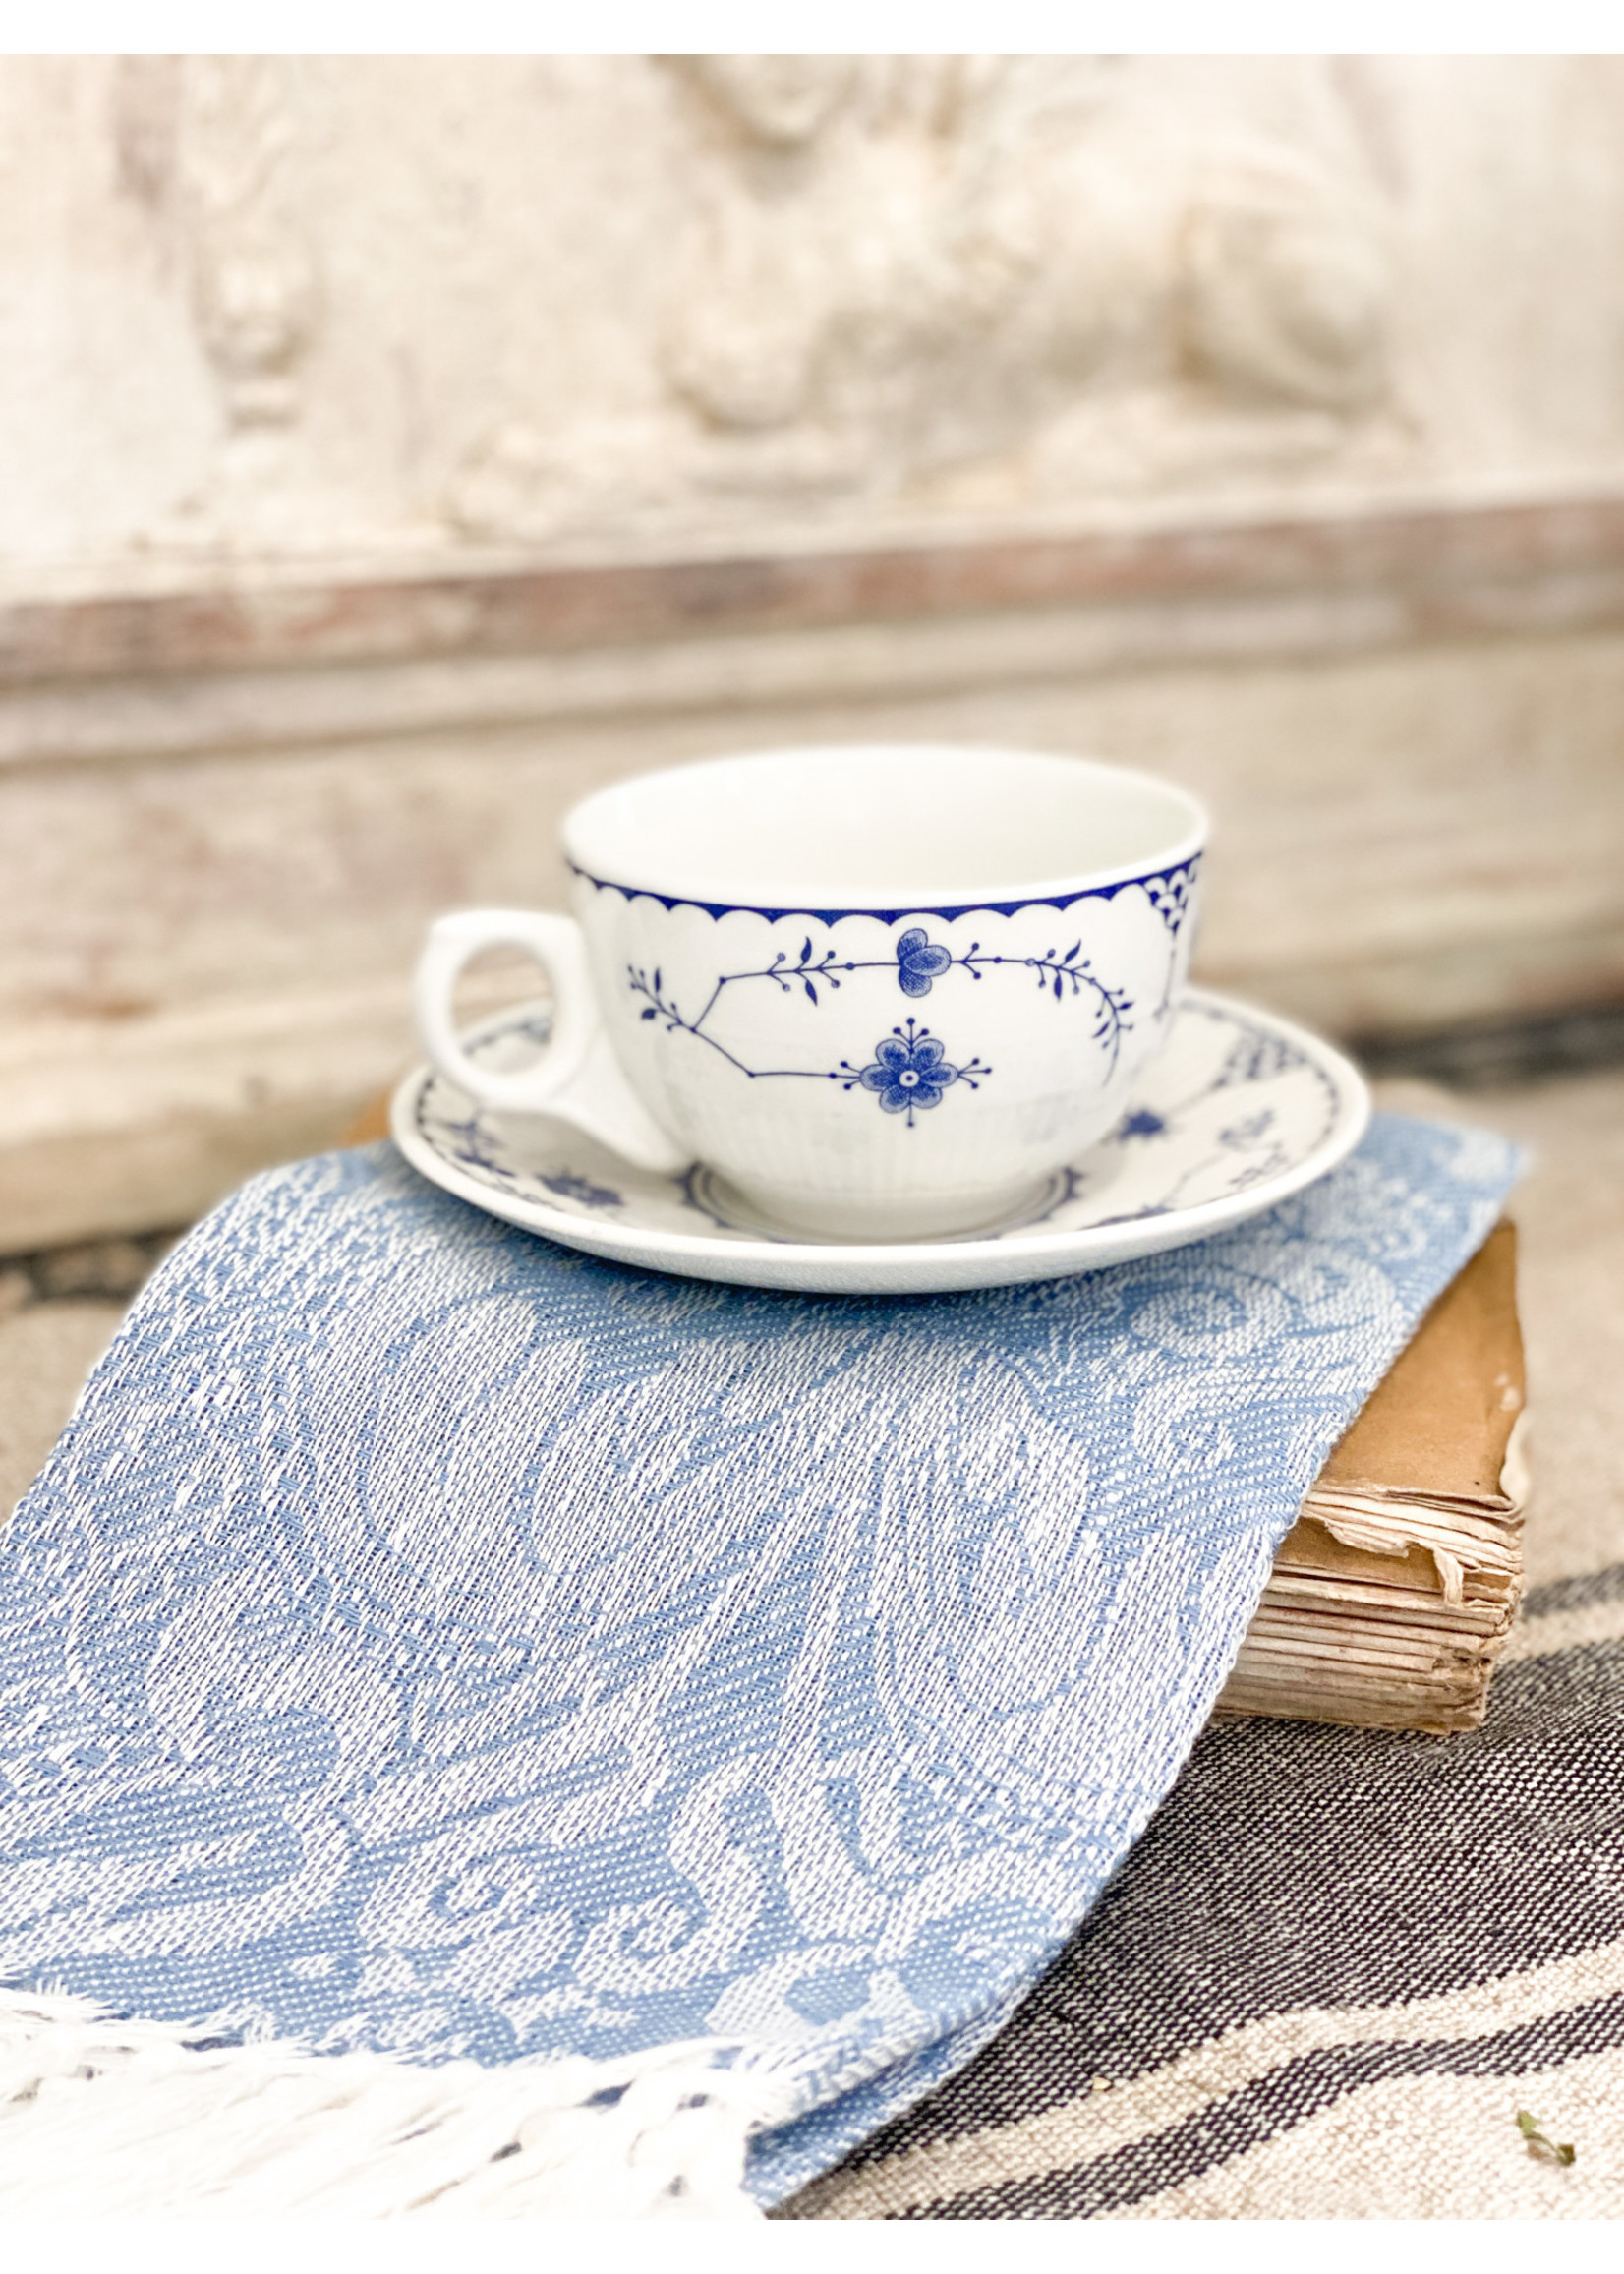 Denmark, Furnivale Limited Tea Cup & Saucer - Made in England